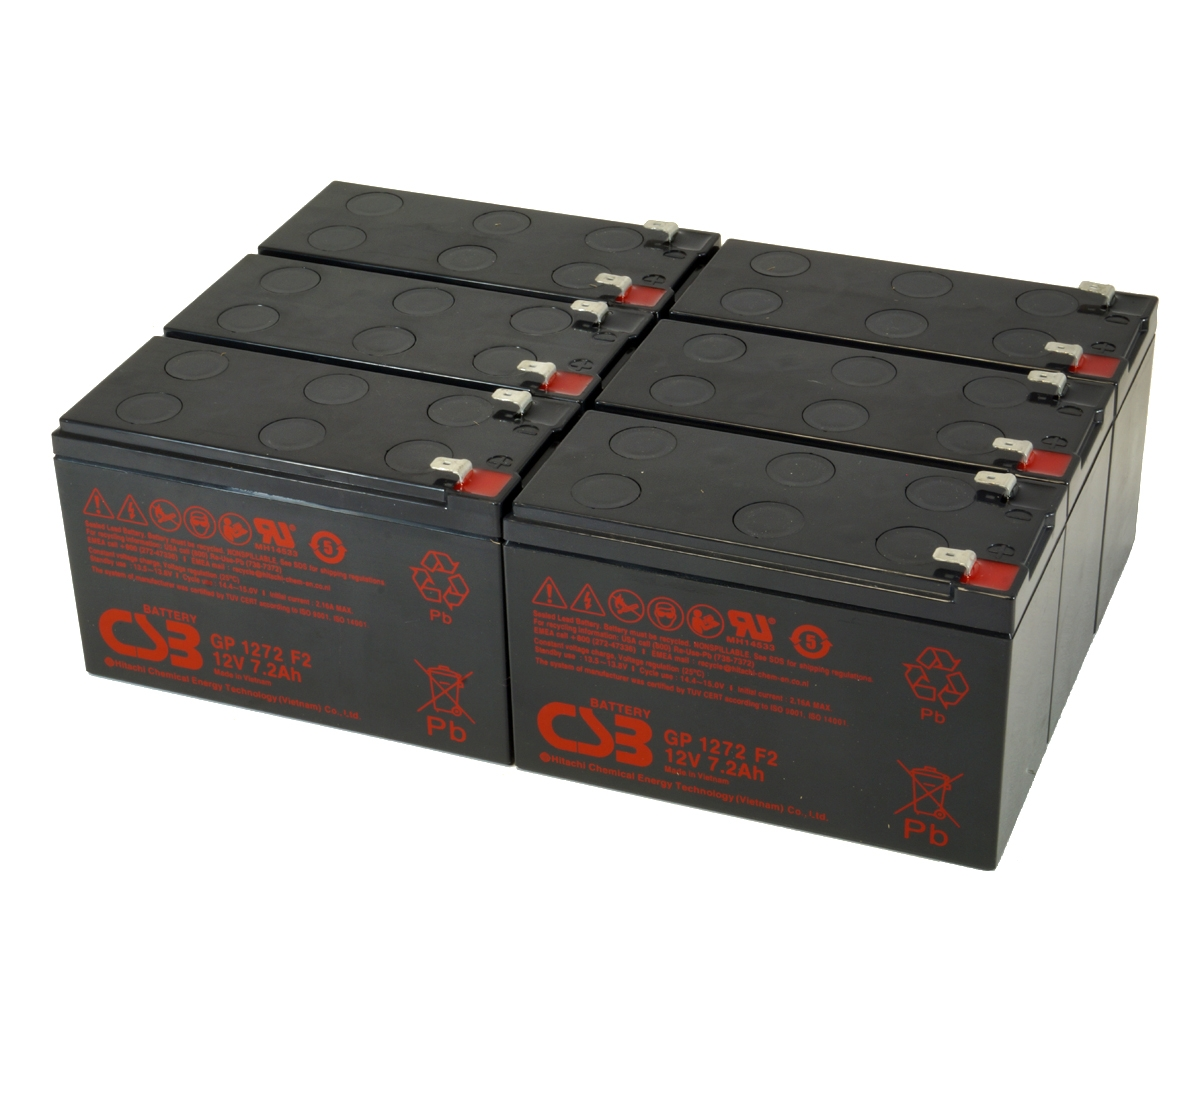 UPS vervangings batterij 6 x GP1272F2 CSB Battery